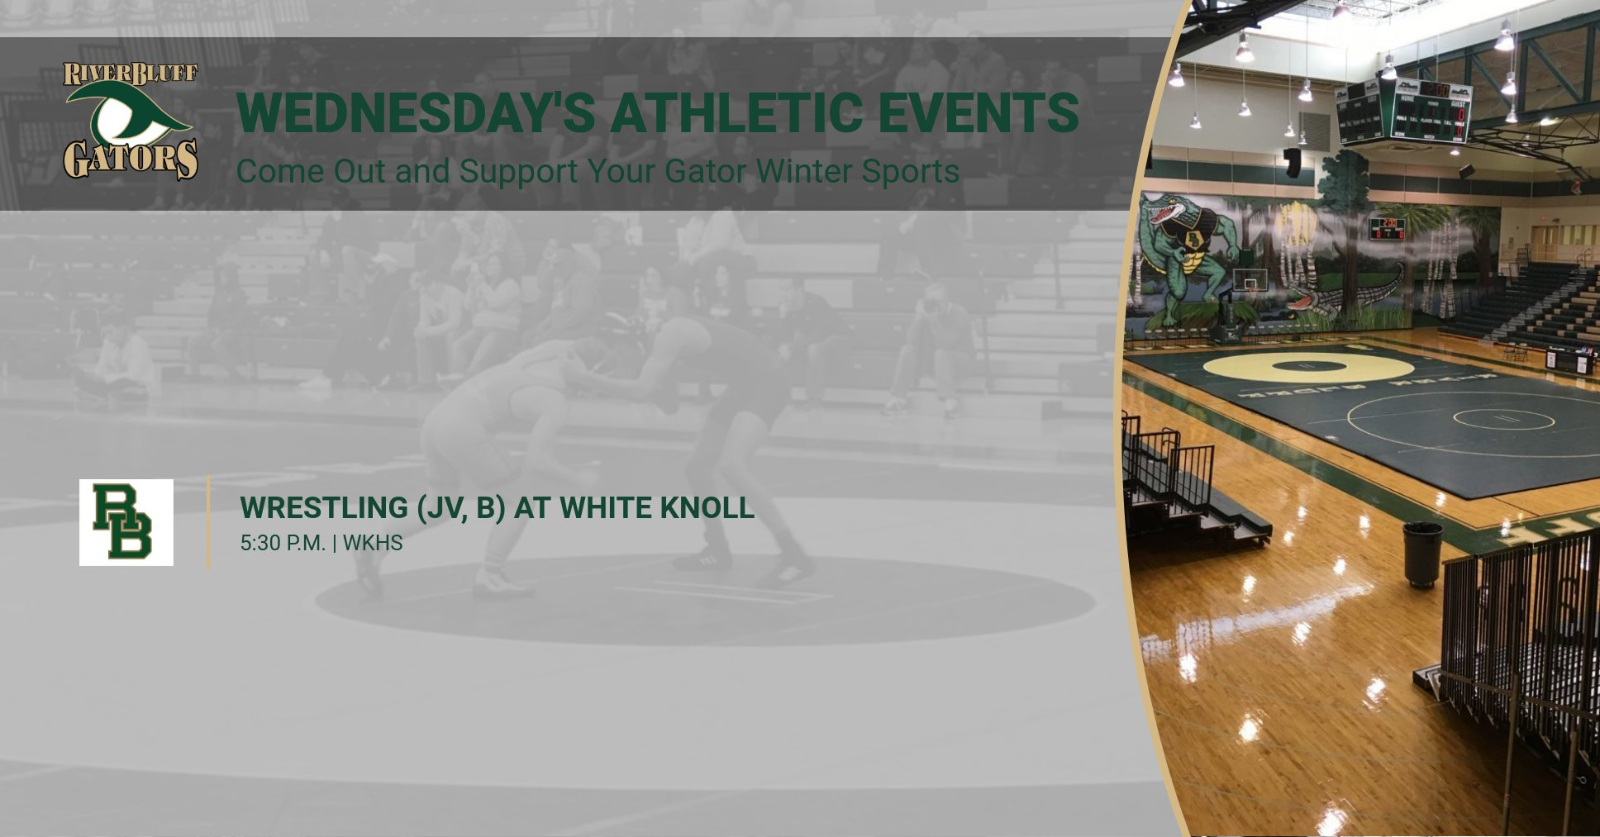 Wednesday's Gator Athletic Events